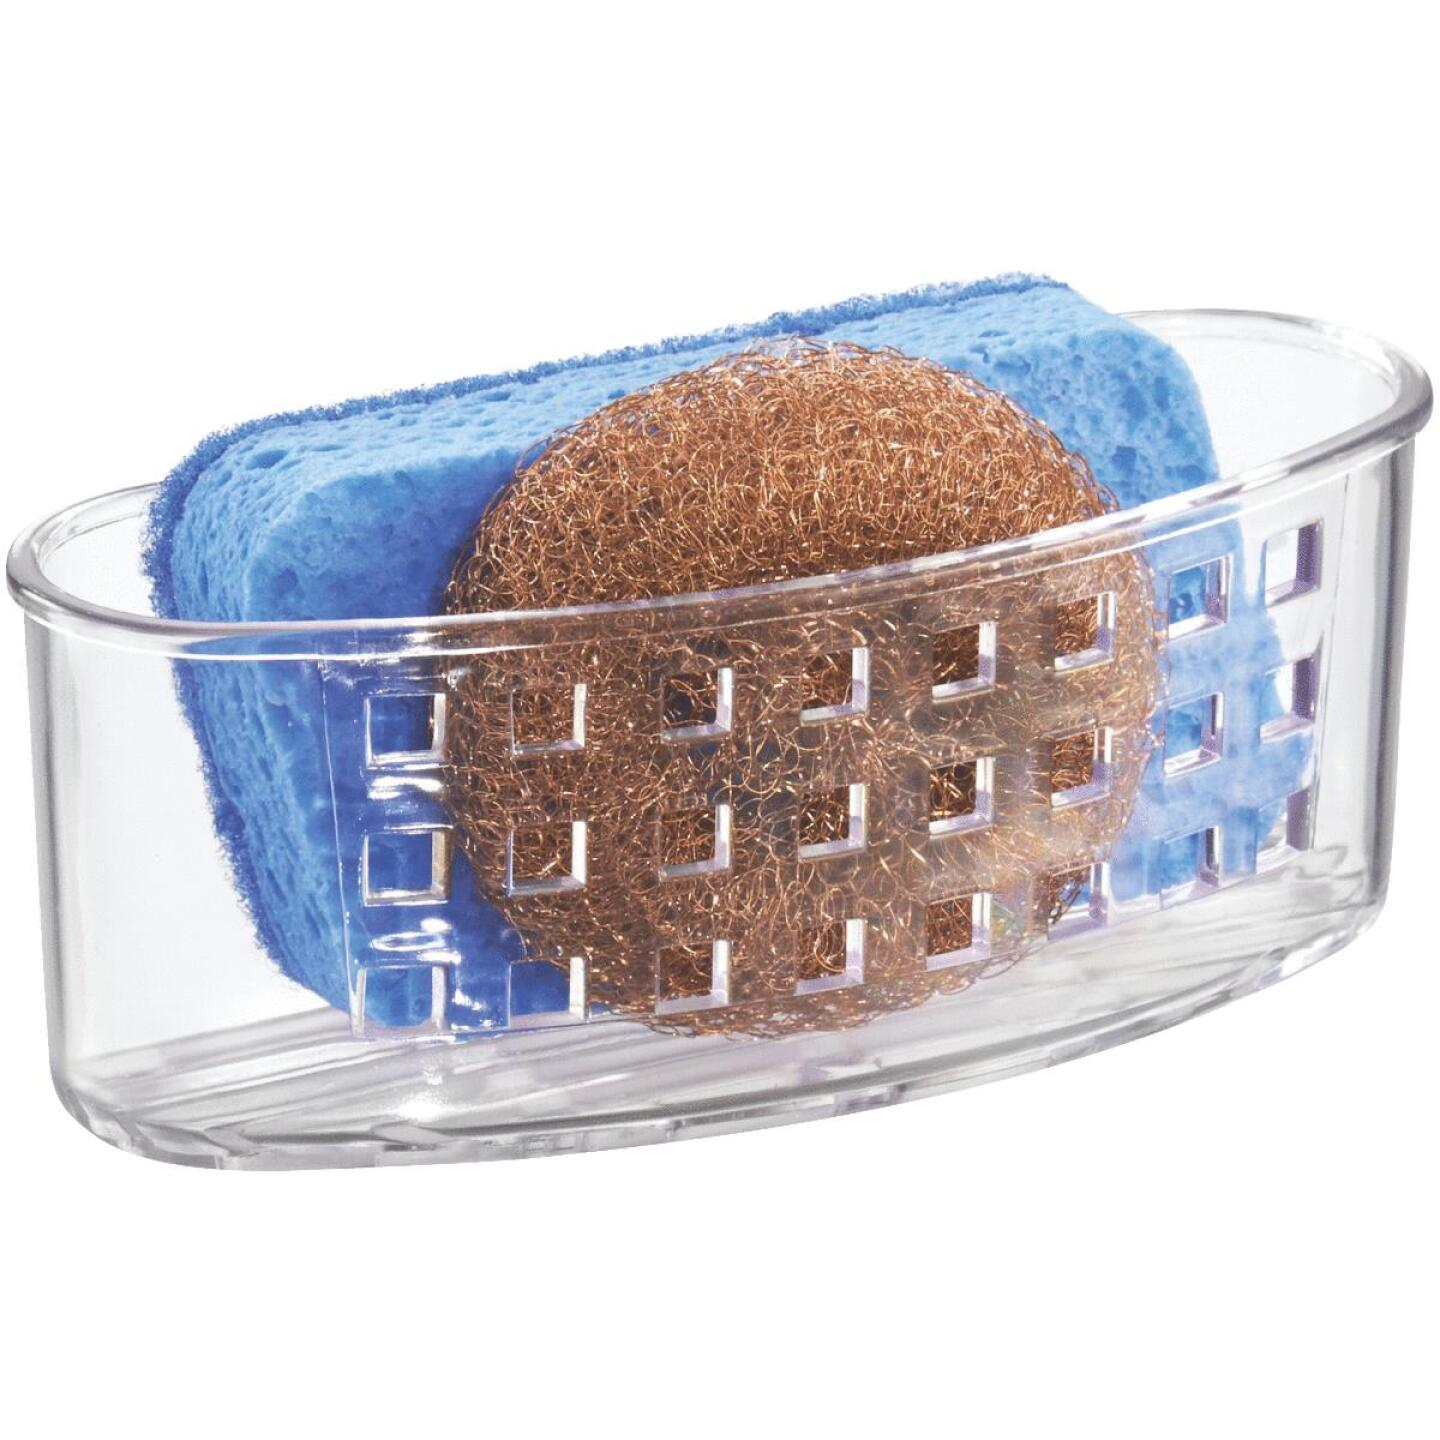 InterDesign Sinkworks Clear Suction Scrubber & Sponge Holder Image 2